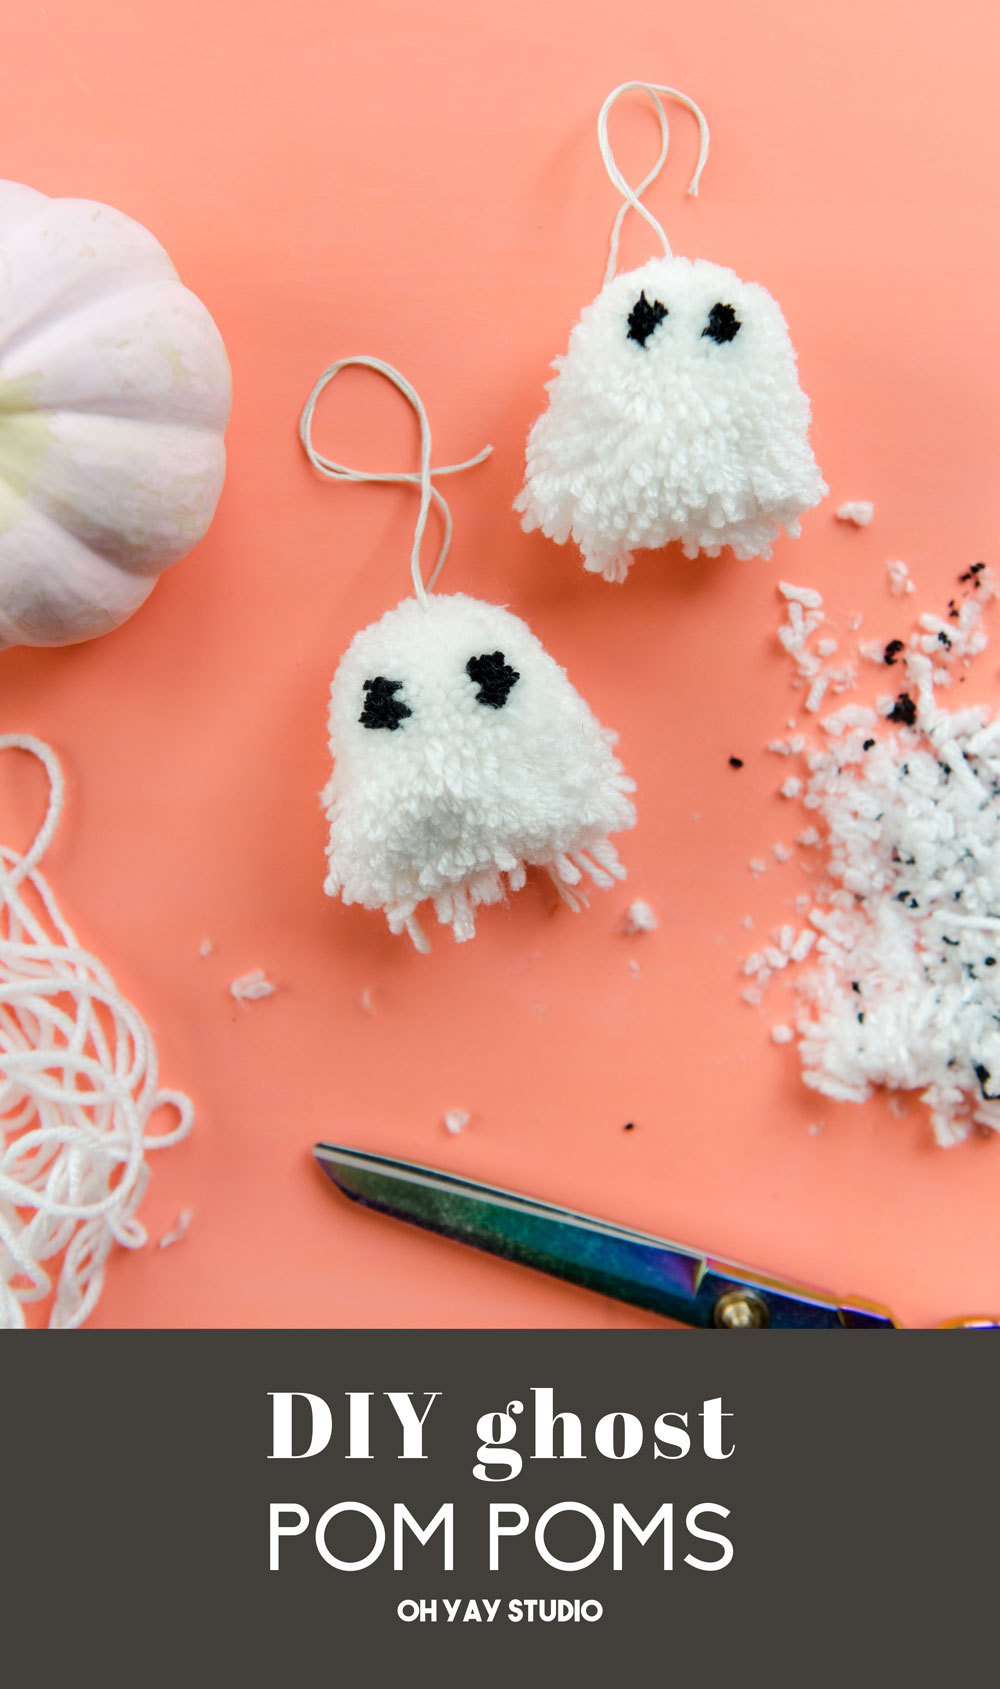 DIY ghost pom pom, DIY halloween decor, DIY halloween idea, Halloween decor ideas, fast and kid friendly Halloween decor